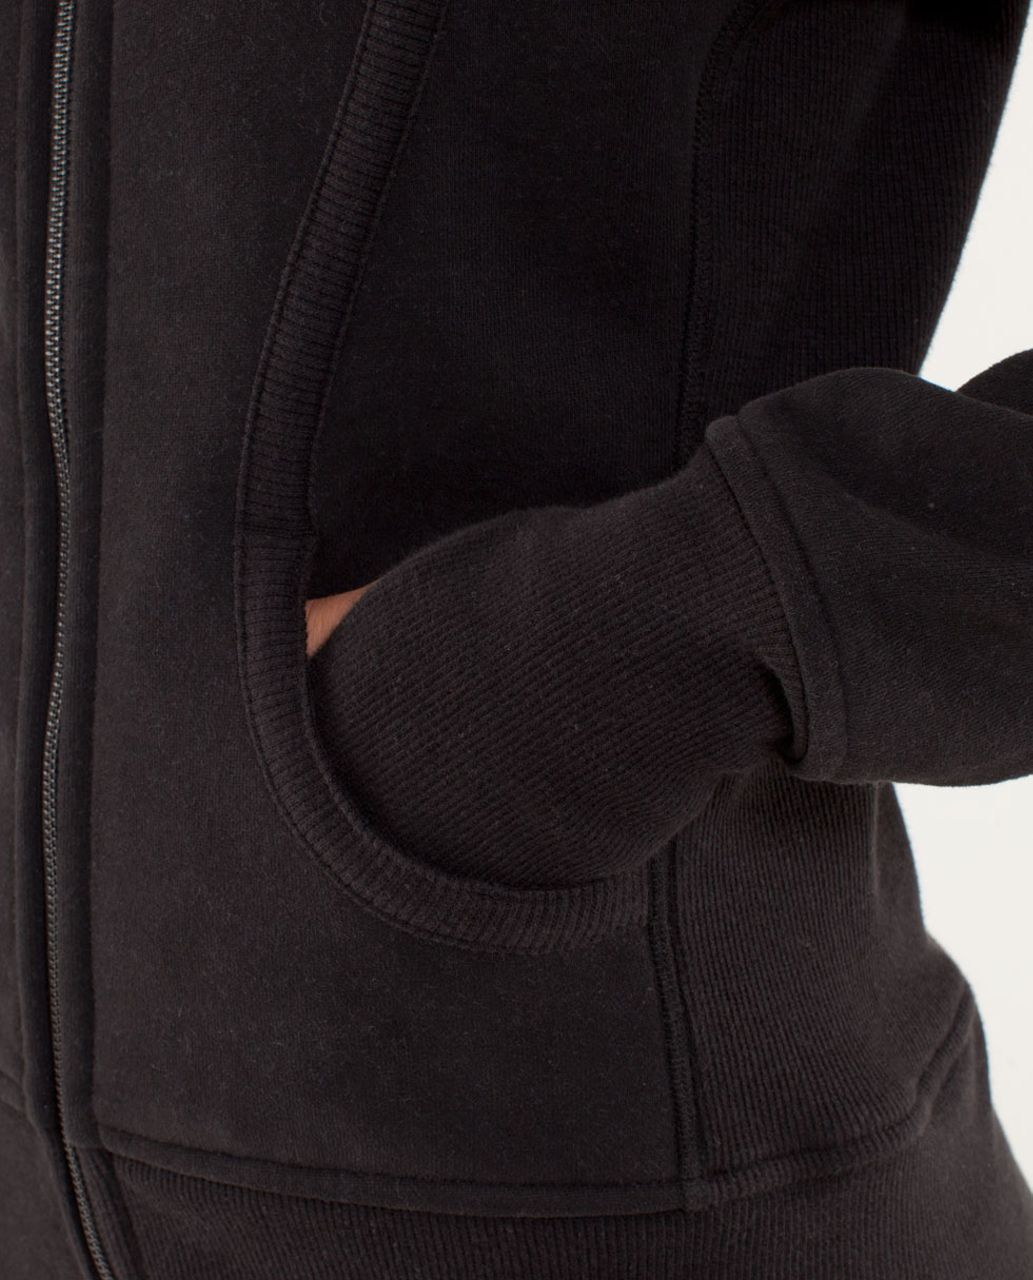 Lululemon Scuba Hoodie - Black /  Power Purple